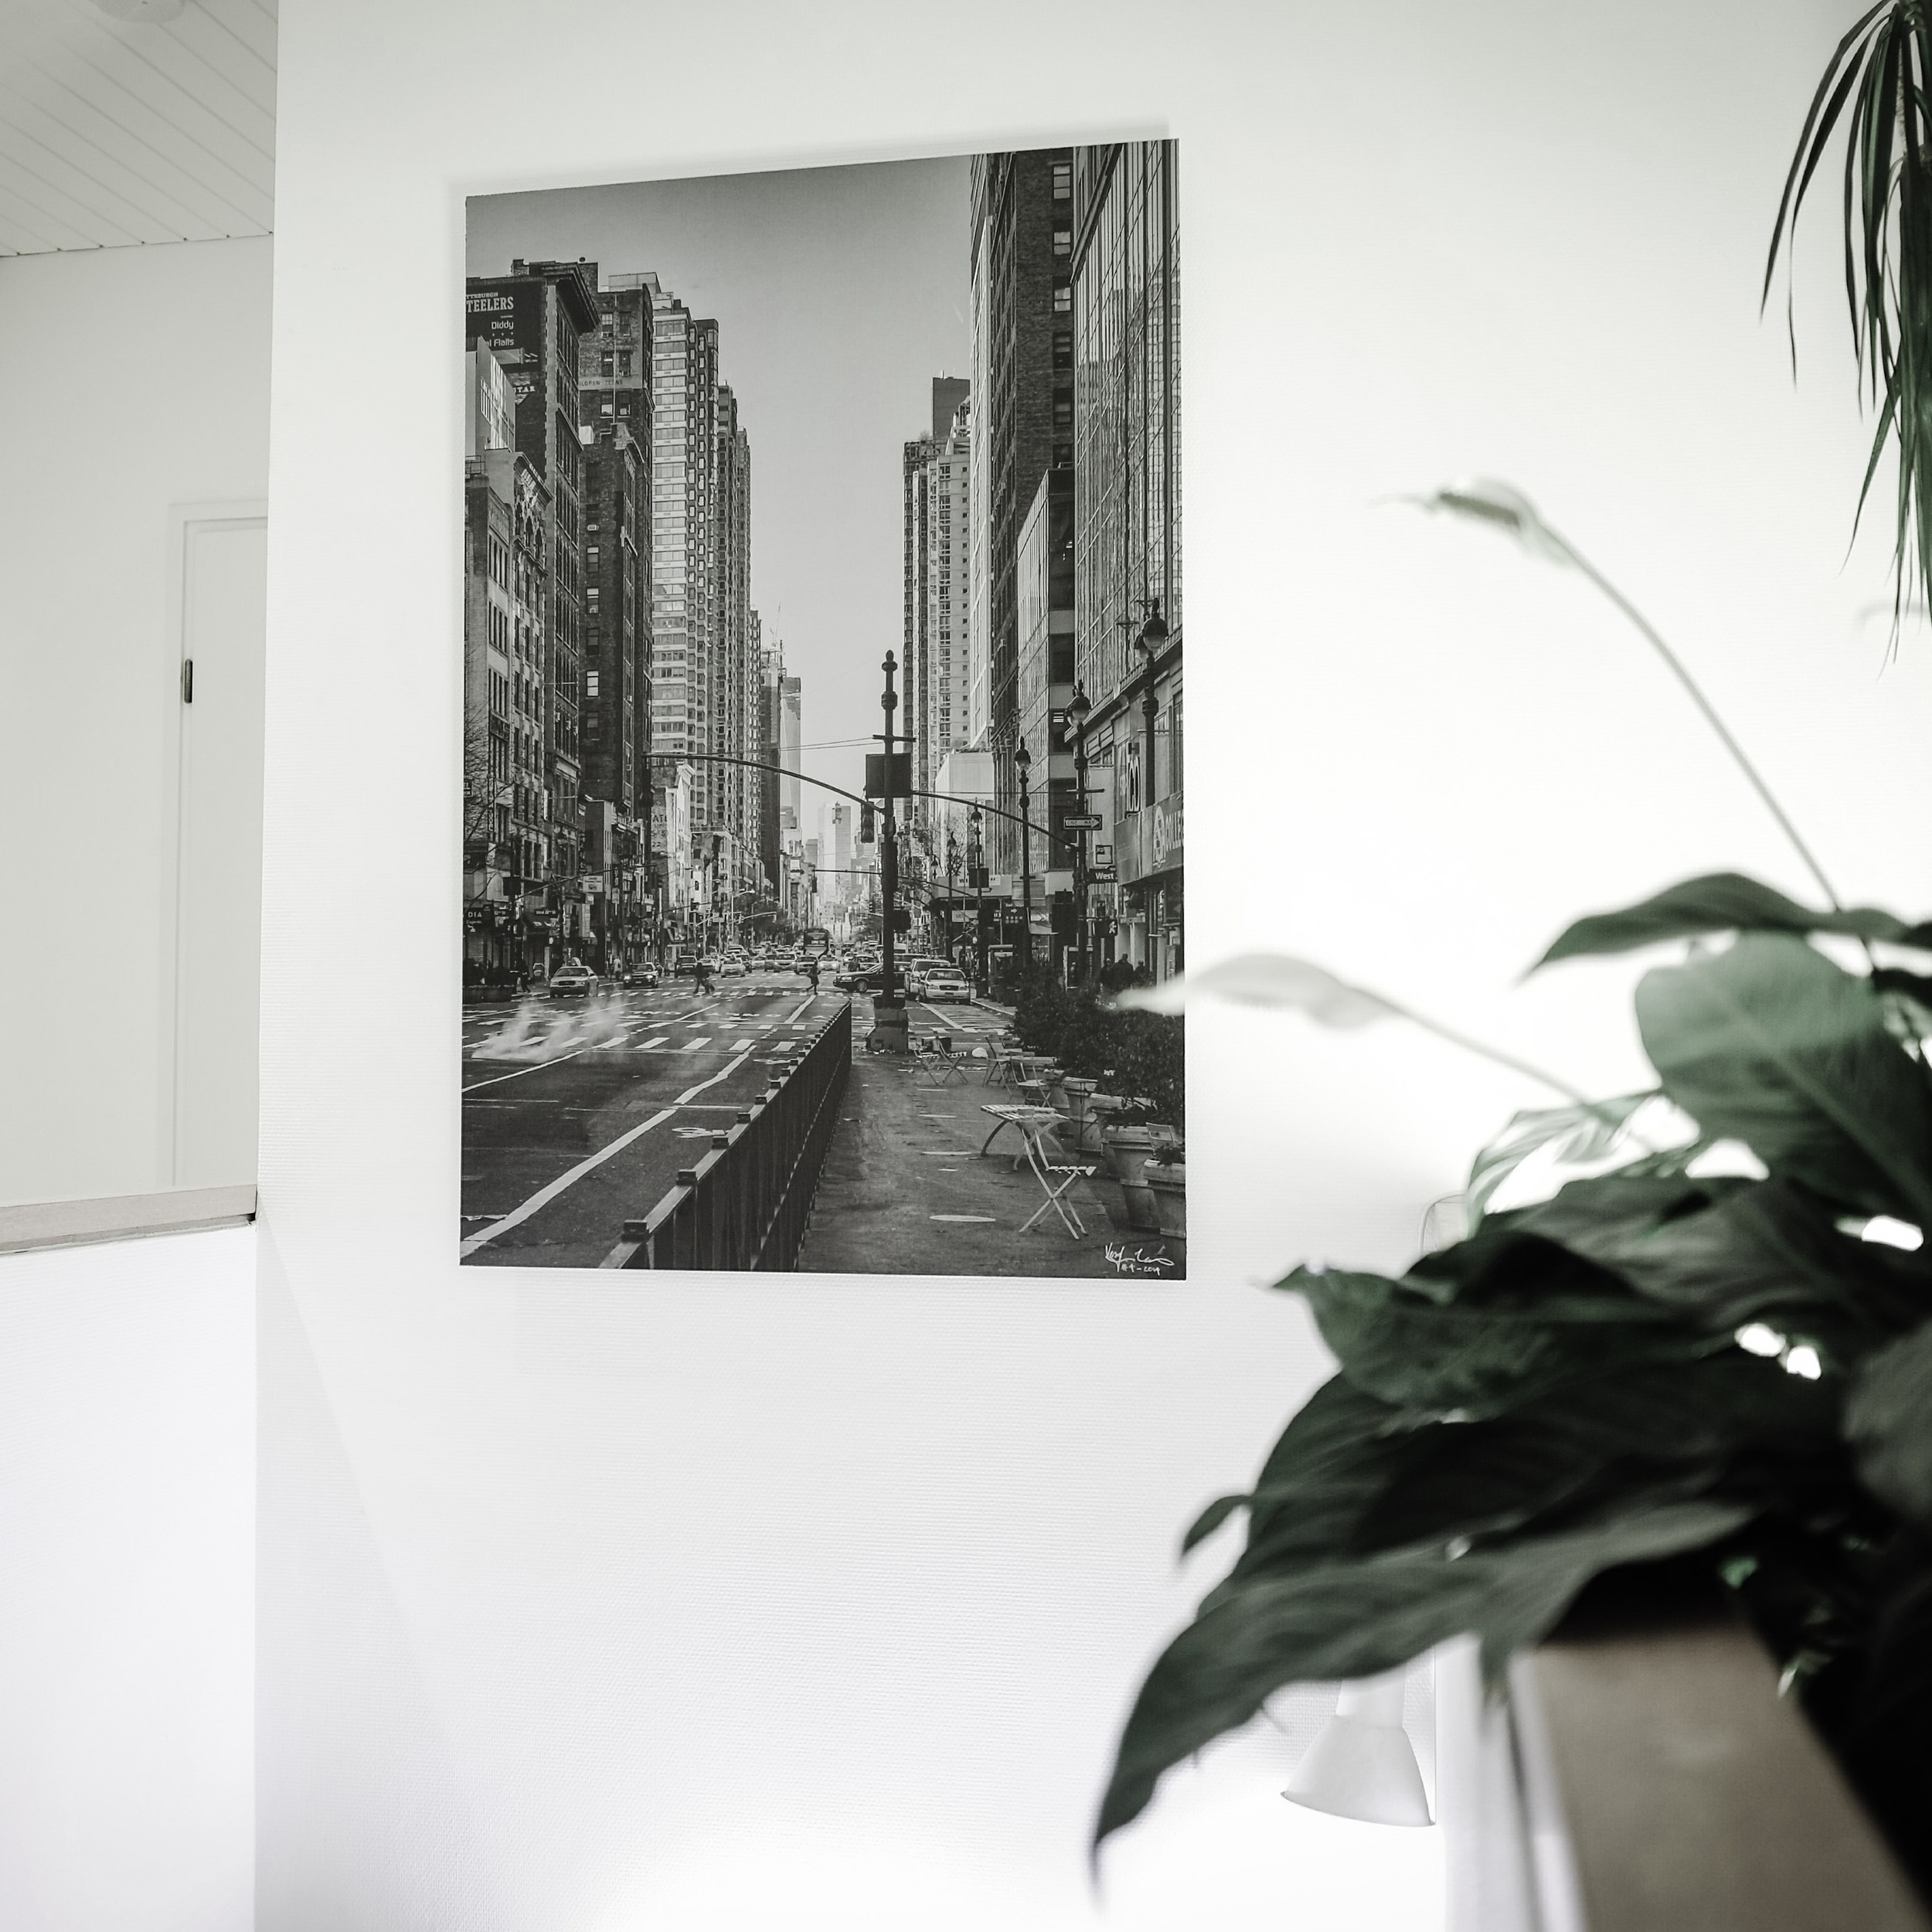 3rd Avenue , New York City, 2013  - Large 95 x 135 cm brushed aluminum black & white print on a staircase wall.